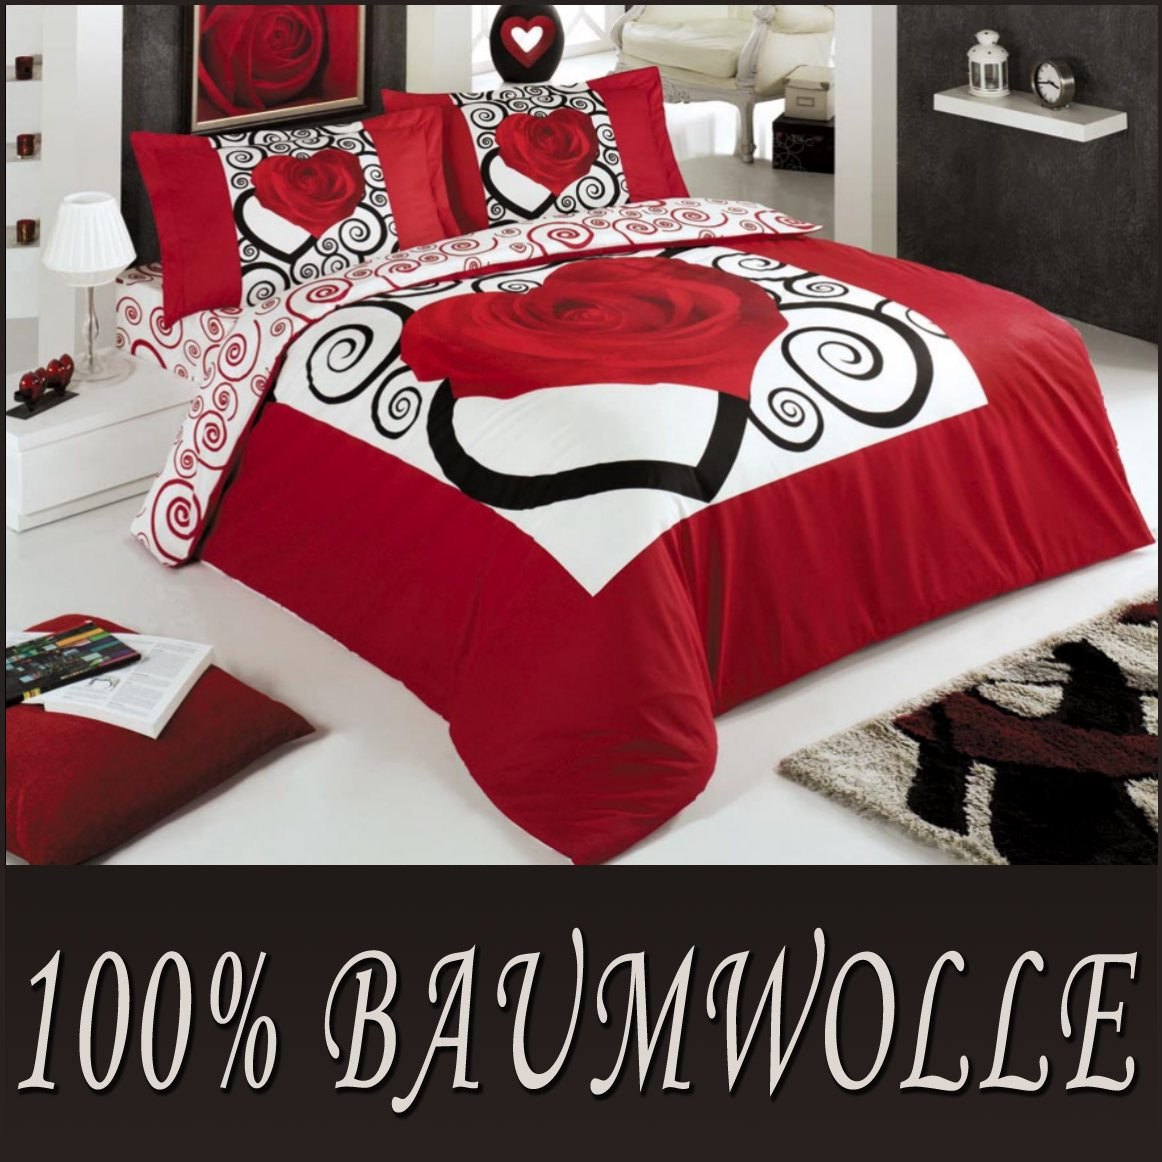 4 tlg bettw sche baumwolle 200x220 cm tutku rot herz rose. Black Bedroom Furniture Sets. Home Design Ideas